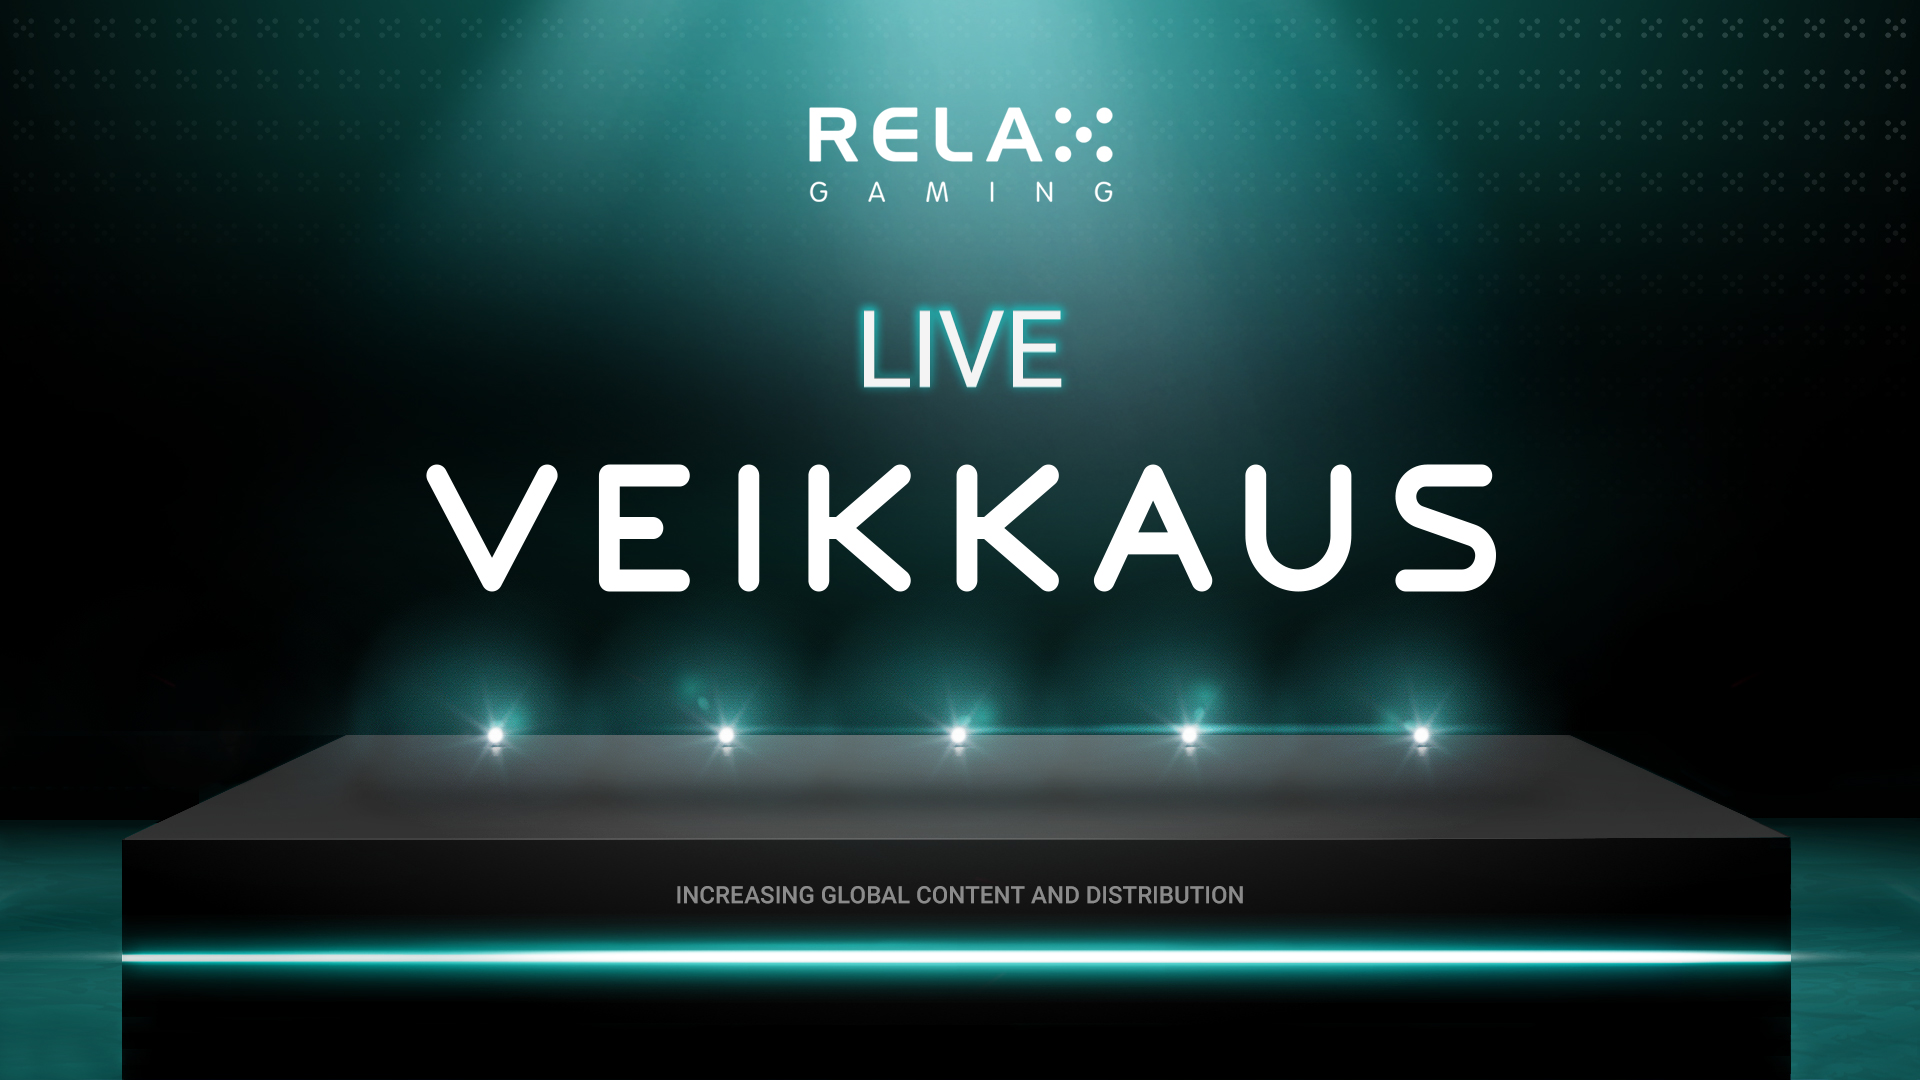 Relax Gaming goes live with Veikkaus in continued Nordic expansion